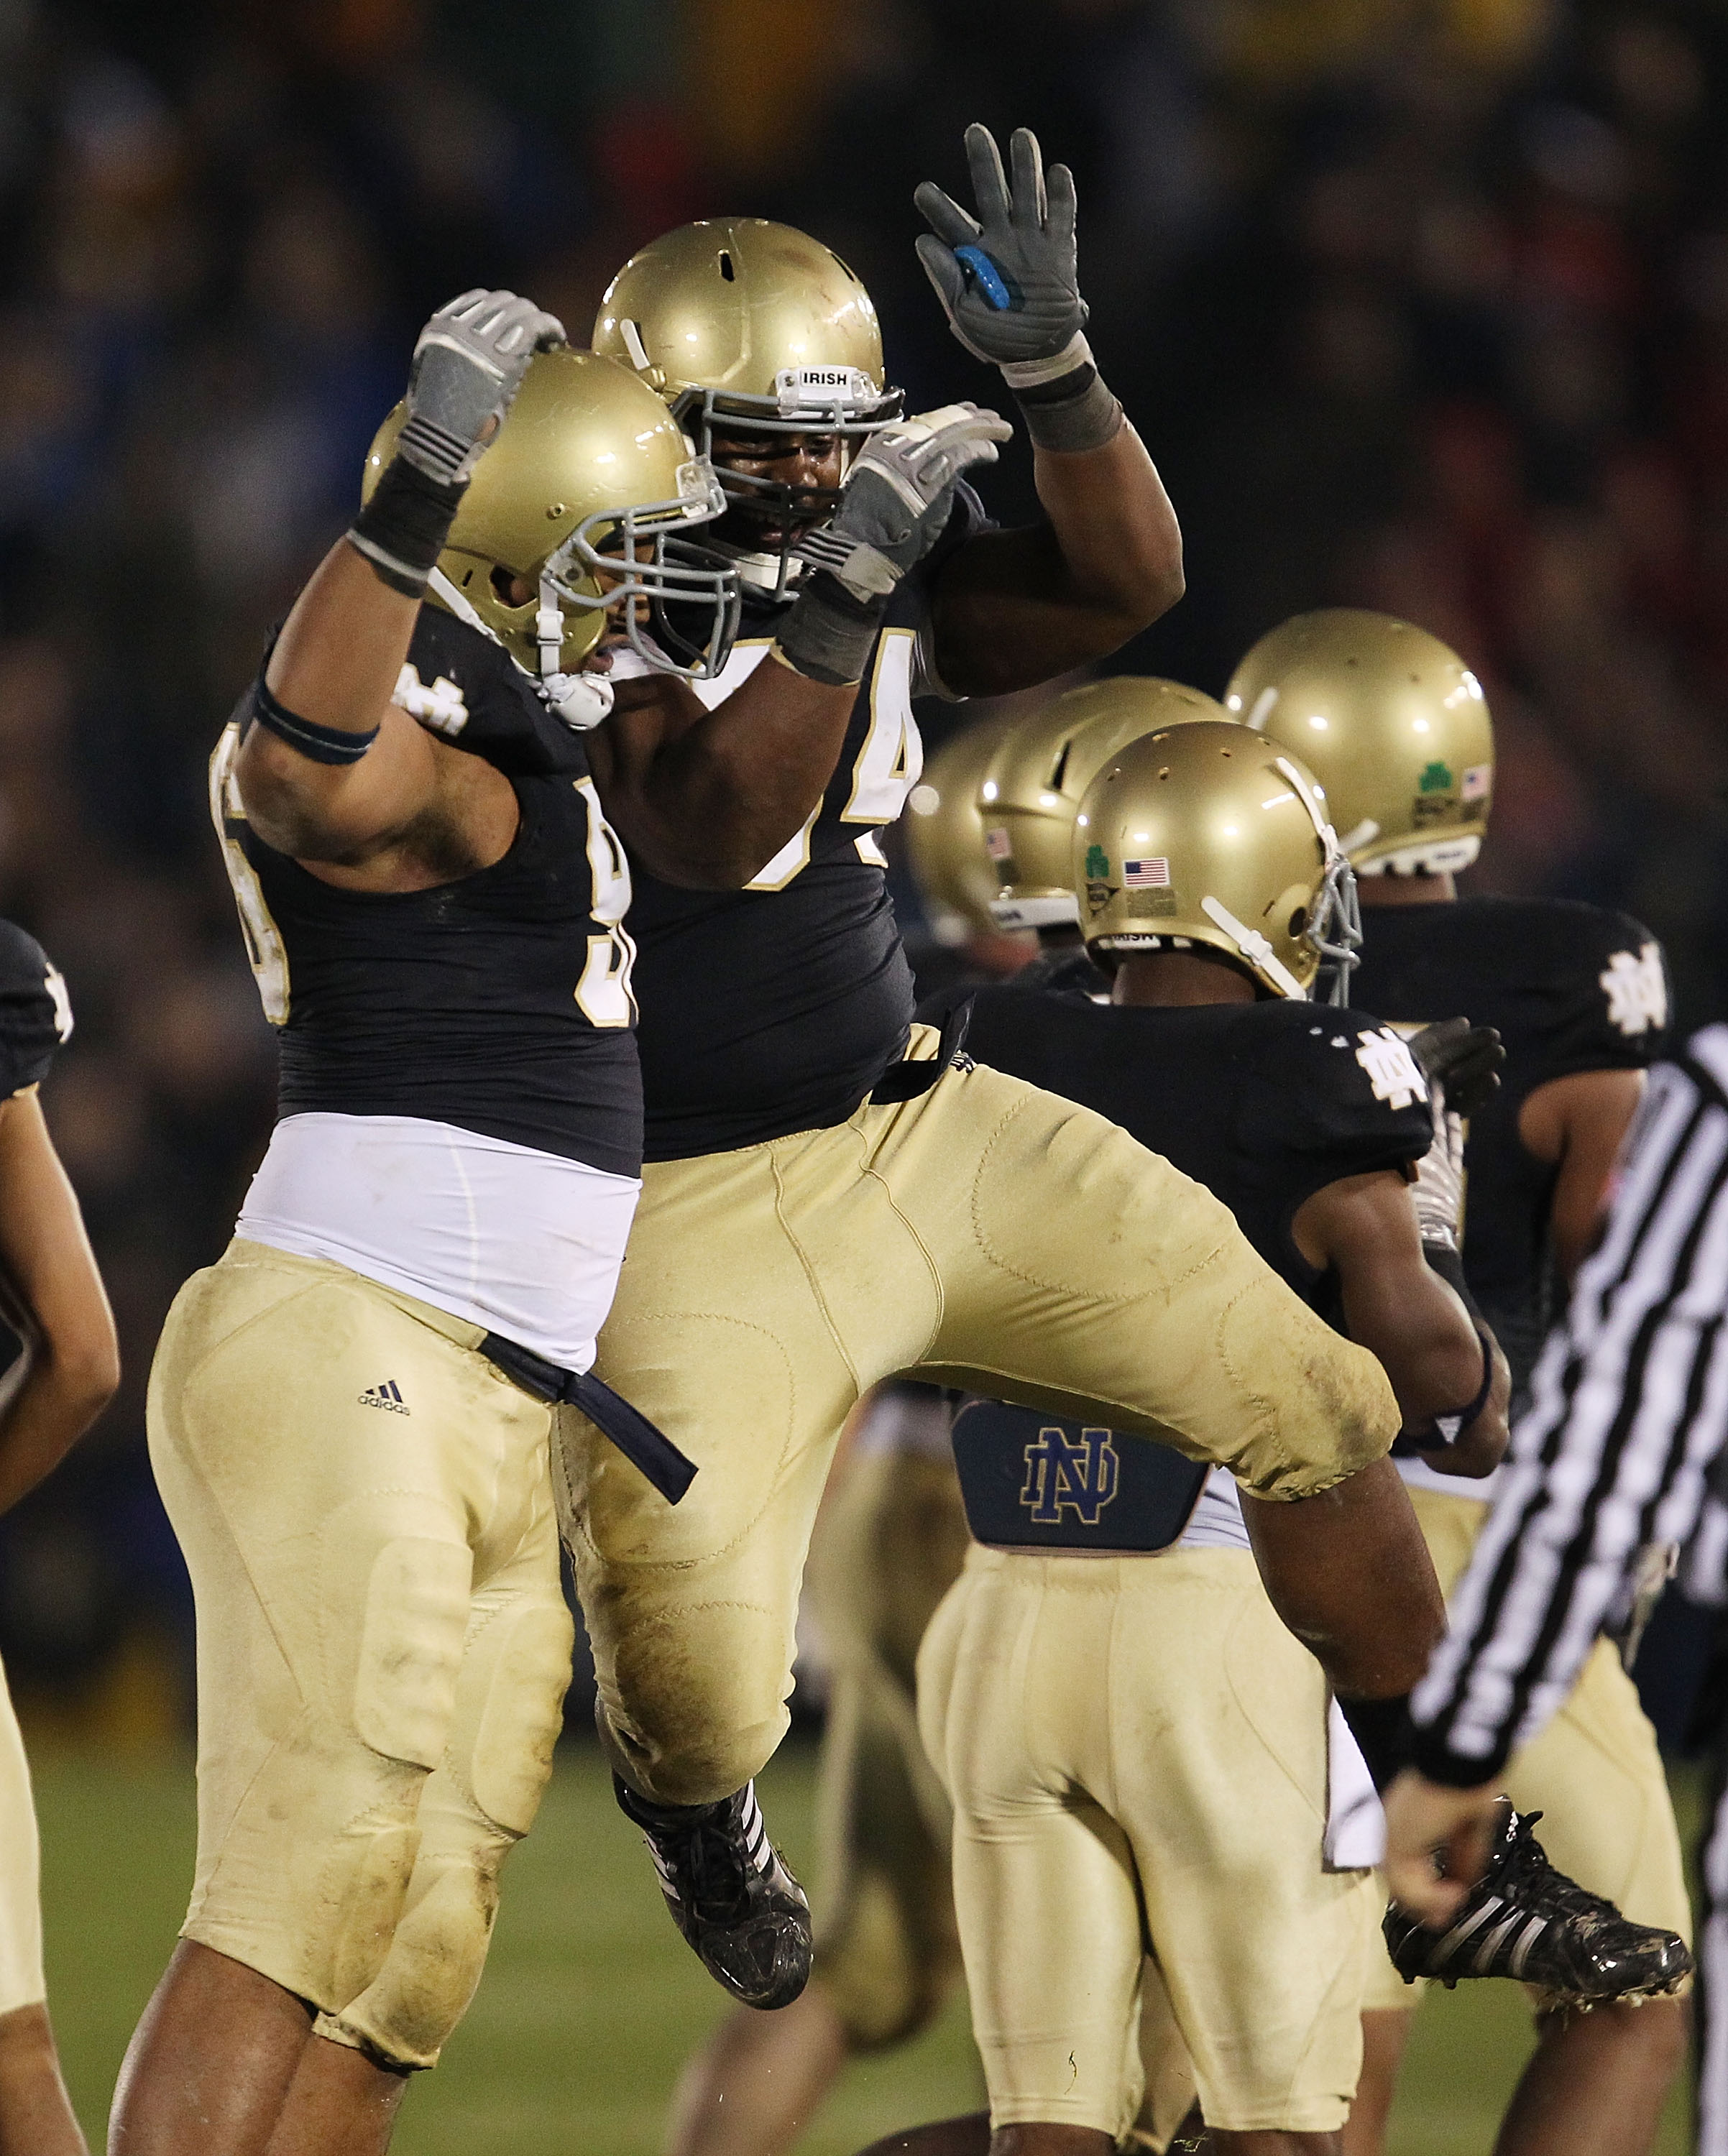 SOUTH BEND, IN - NOVEMBER 13: (L-R) Kona Schwenke #96 and Hafis Williams #94 of the Notre Dame Fighting Irish celebrate a win over the Utah Utes at Notre Dame Stadium on November 13, 2010 in South Bend, Indiana. Notre Dame defeated Utah 28-3. (Photo by Jo